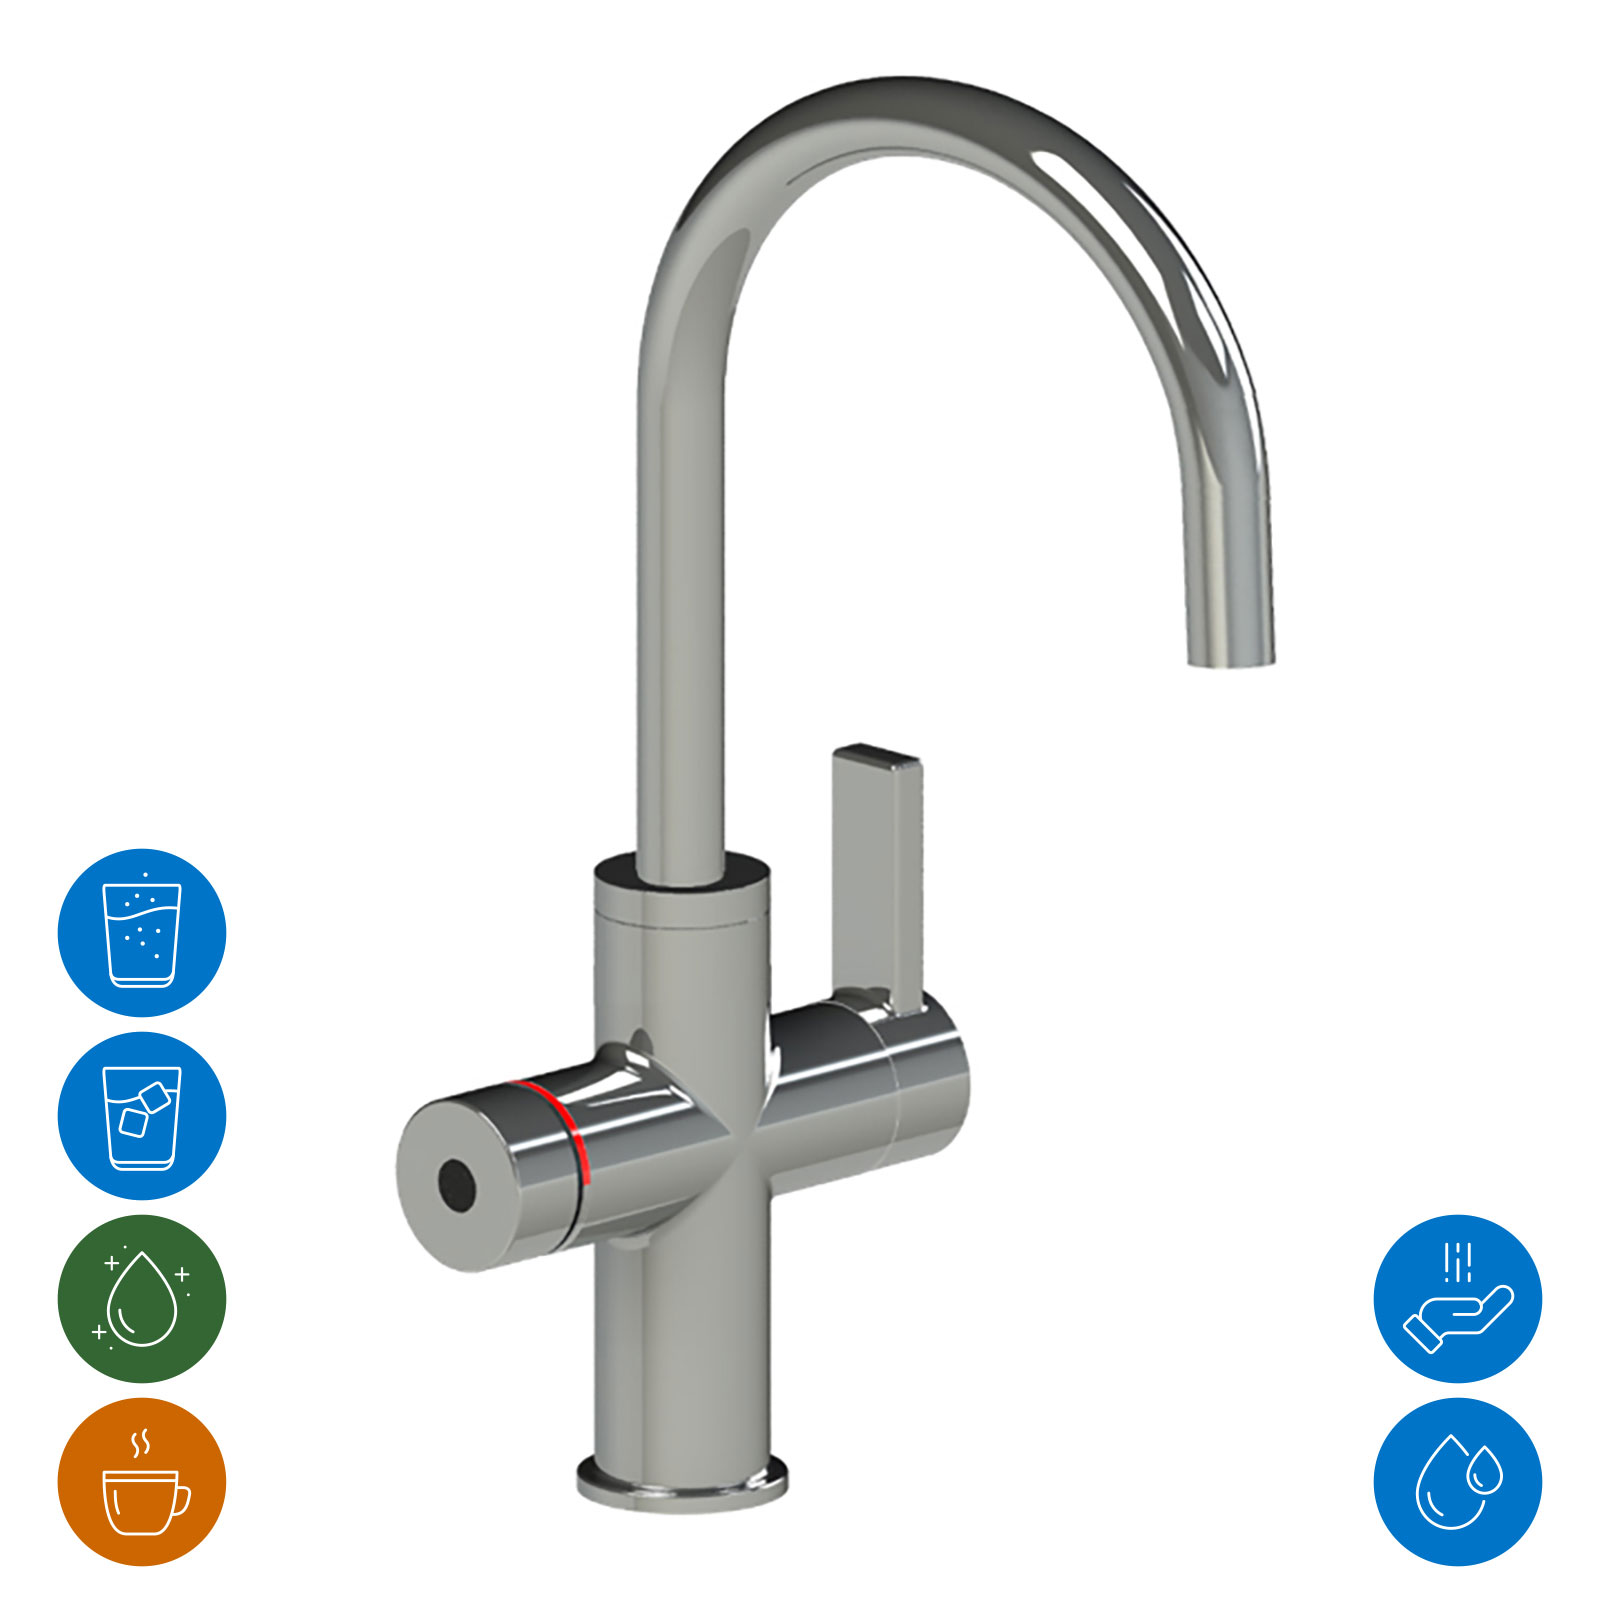 Multifunctional faucet with electronic push/turn knob for controlling the conditioned water undersink unit and hybrid function